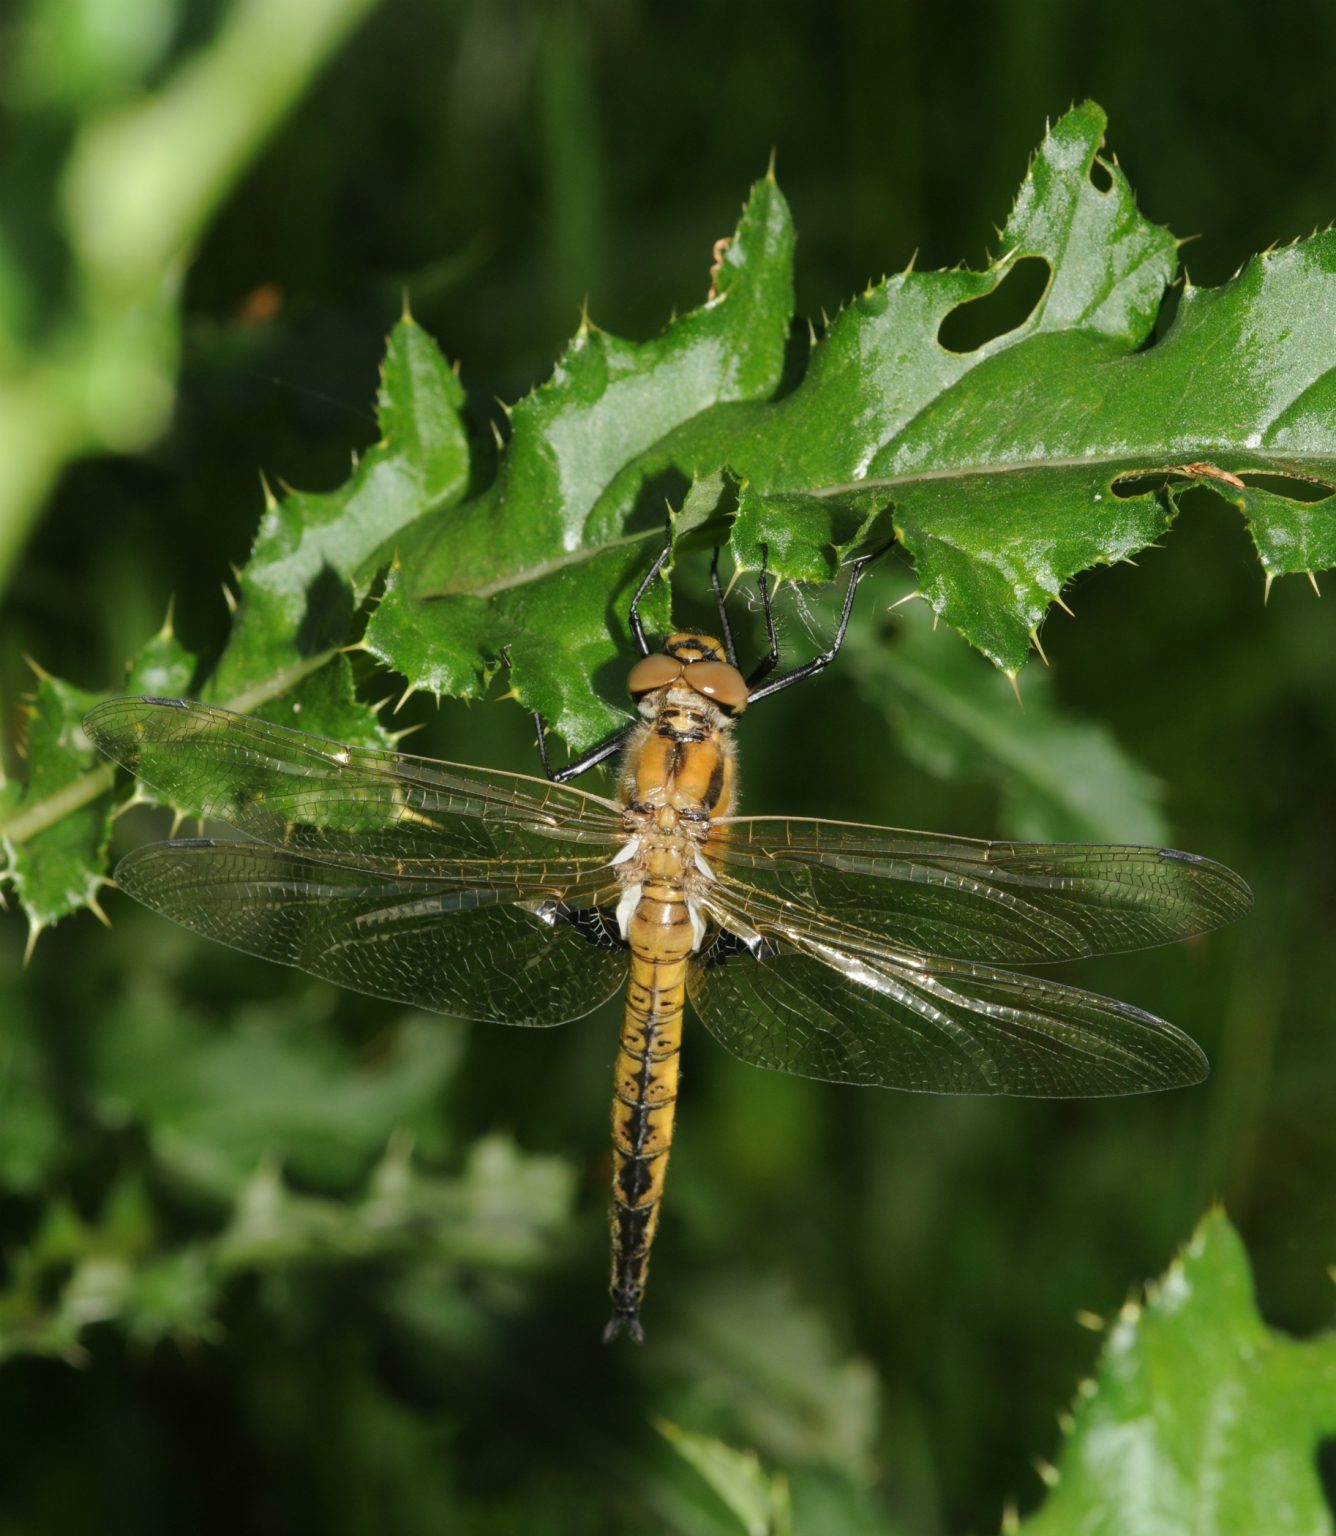 Eurasian Baskettail